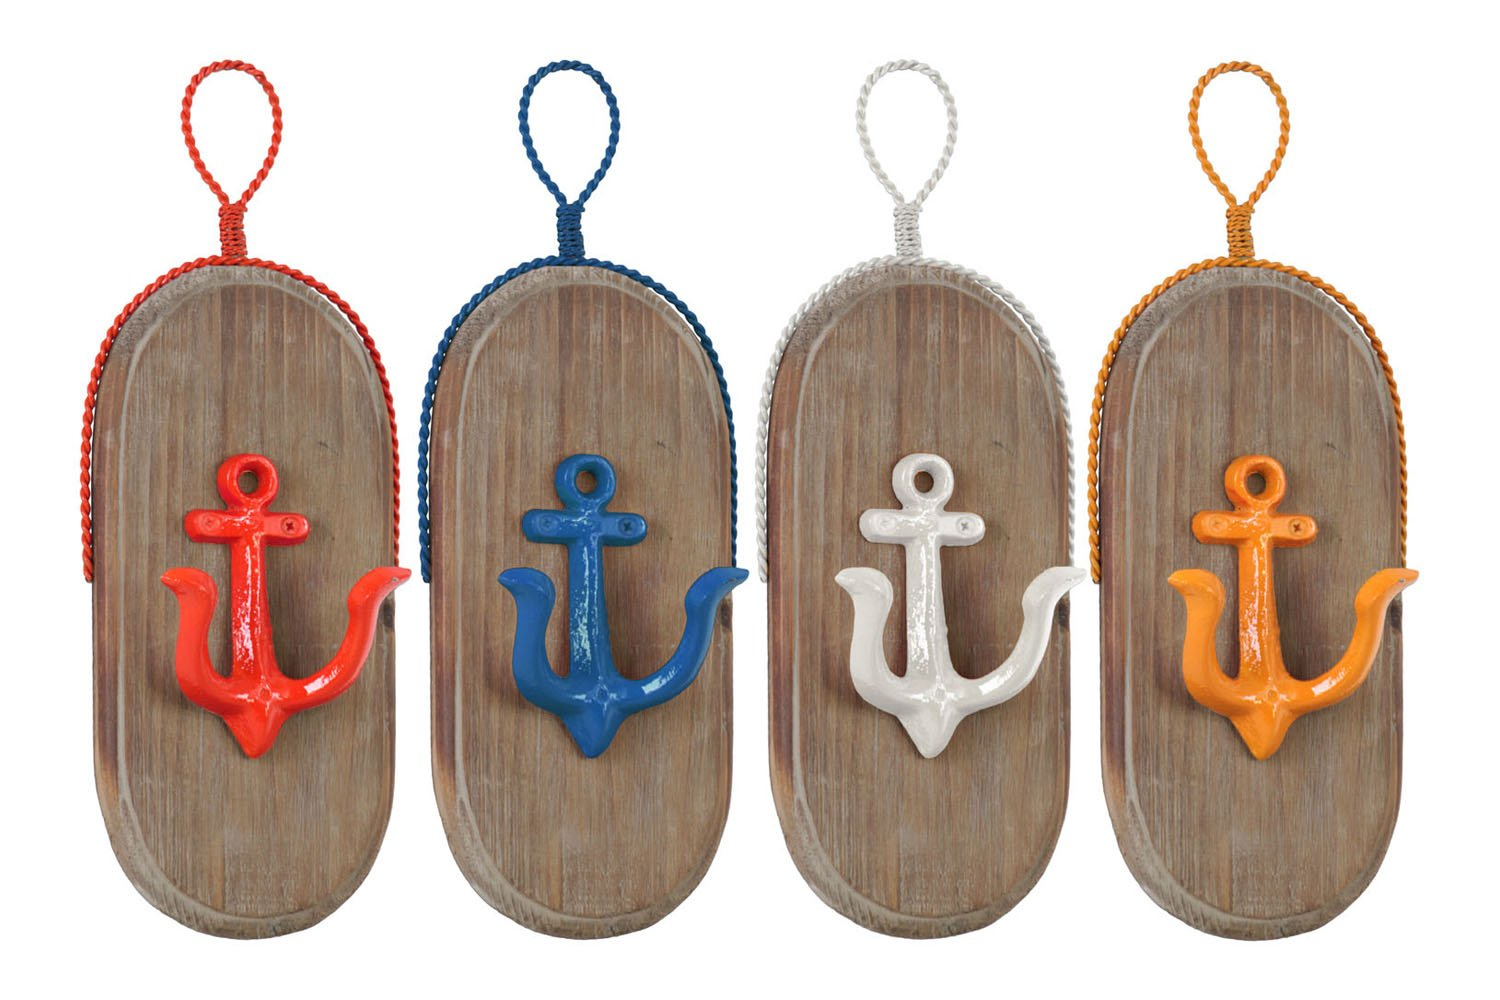 Urban Trends Collection Metal Oval Wall Hook with 1 Hanger, Wood Board and 1 Anchor Design Hook Coated Finish Assortment of Four Colors - Yellow, Dark Blue, White, Red - 13'''' H, NEW